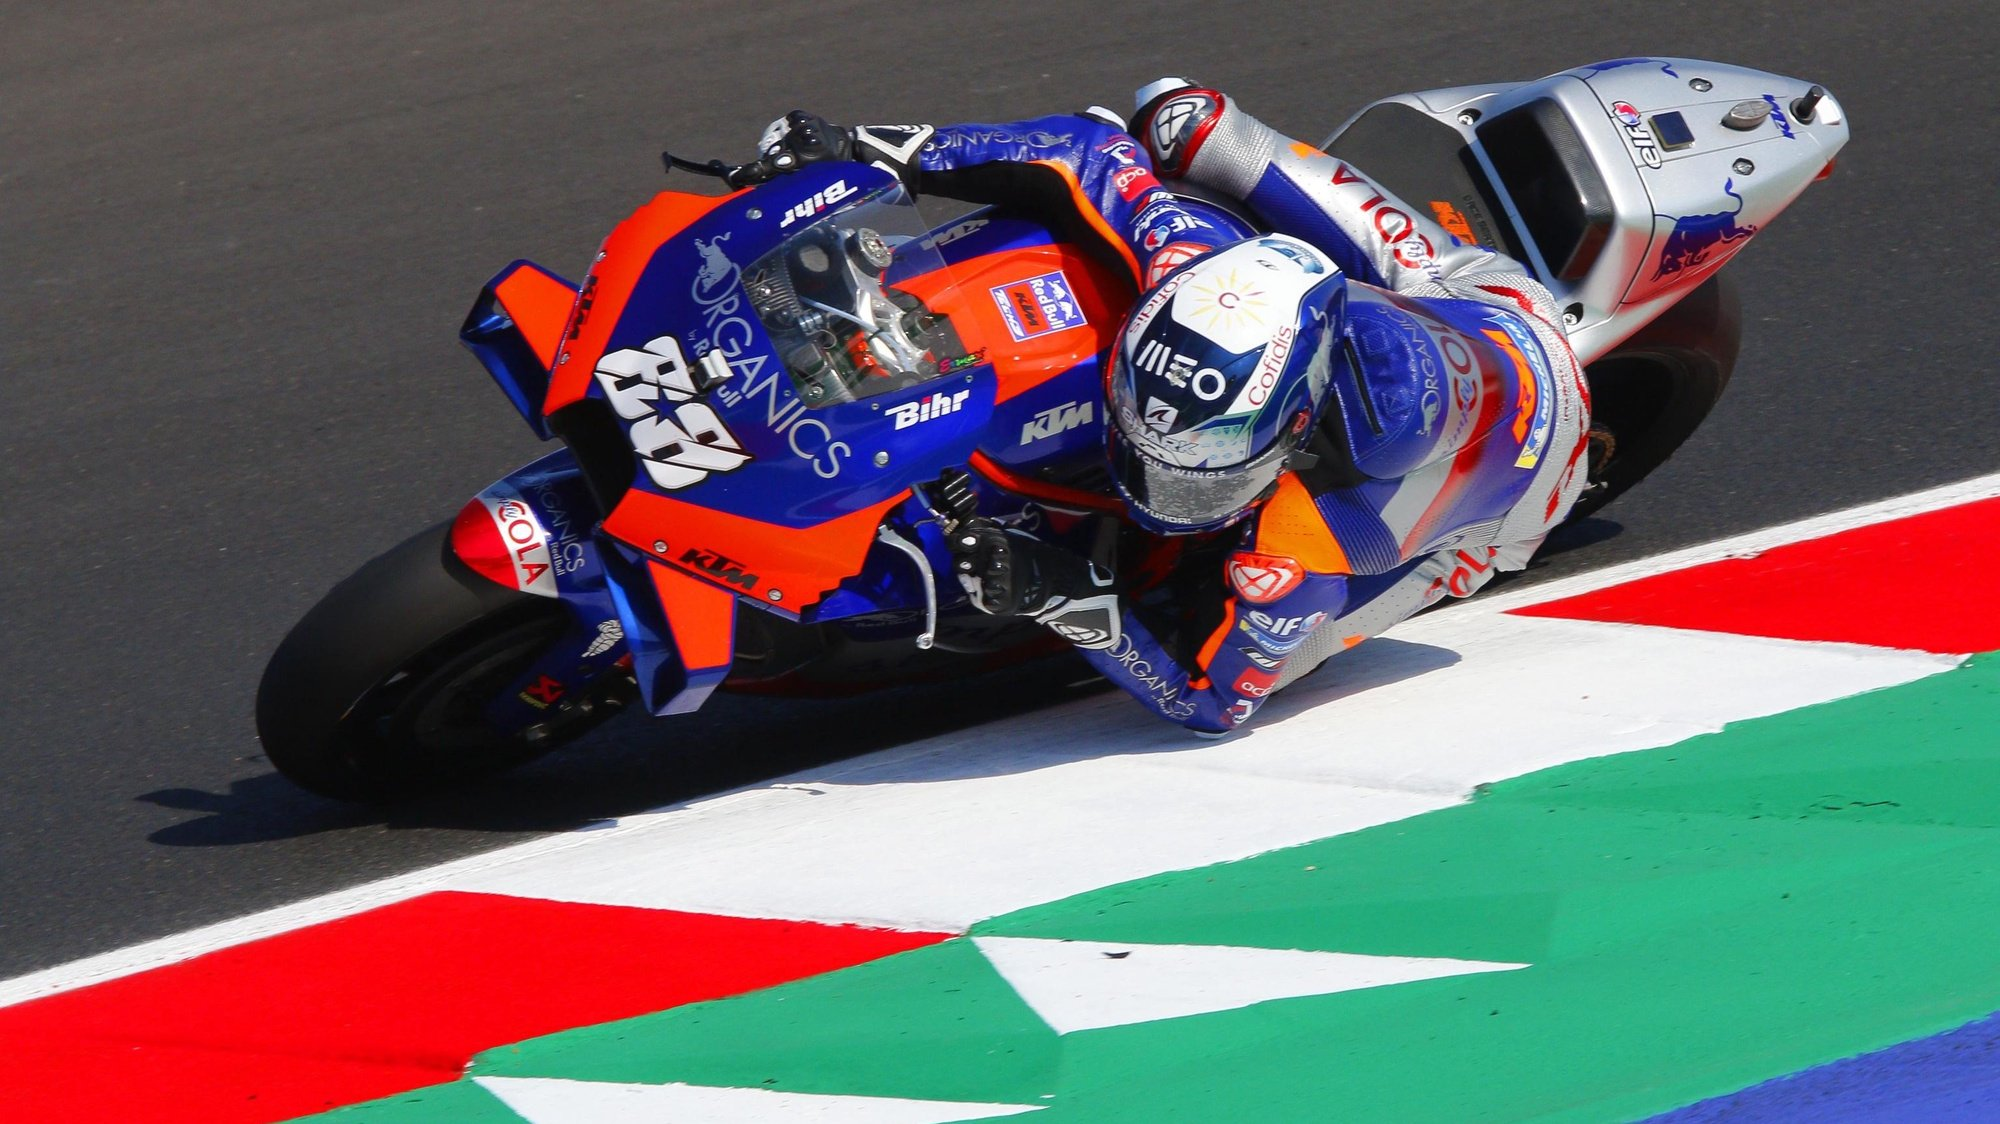 epa08661068 Portuguese MotoGP rider Miguel Oliveira of Red Bull KTM Tech 3 in action during a practice session for the motorcycling Grand Prix of San Marino at the Misano World Circuit Marco Simoncelli, Italy, 11 September 2020.  EPA/PASQUALE BOVE